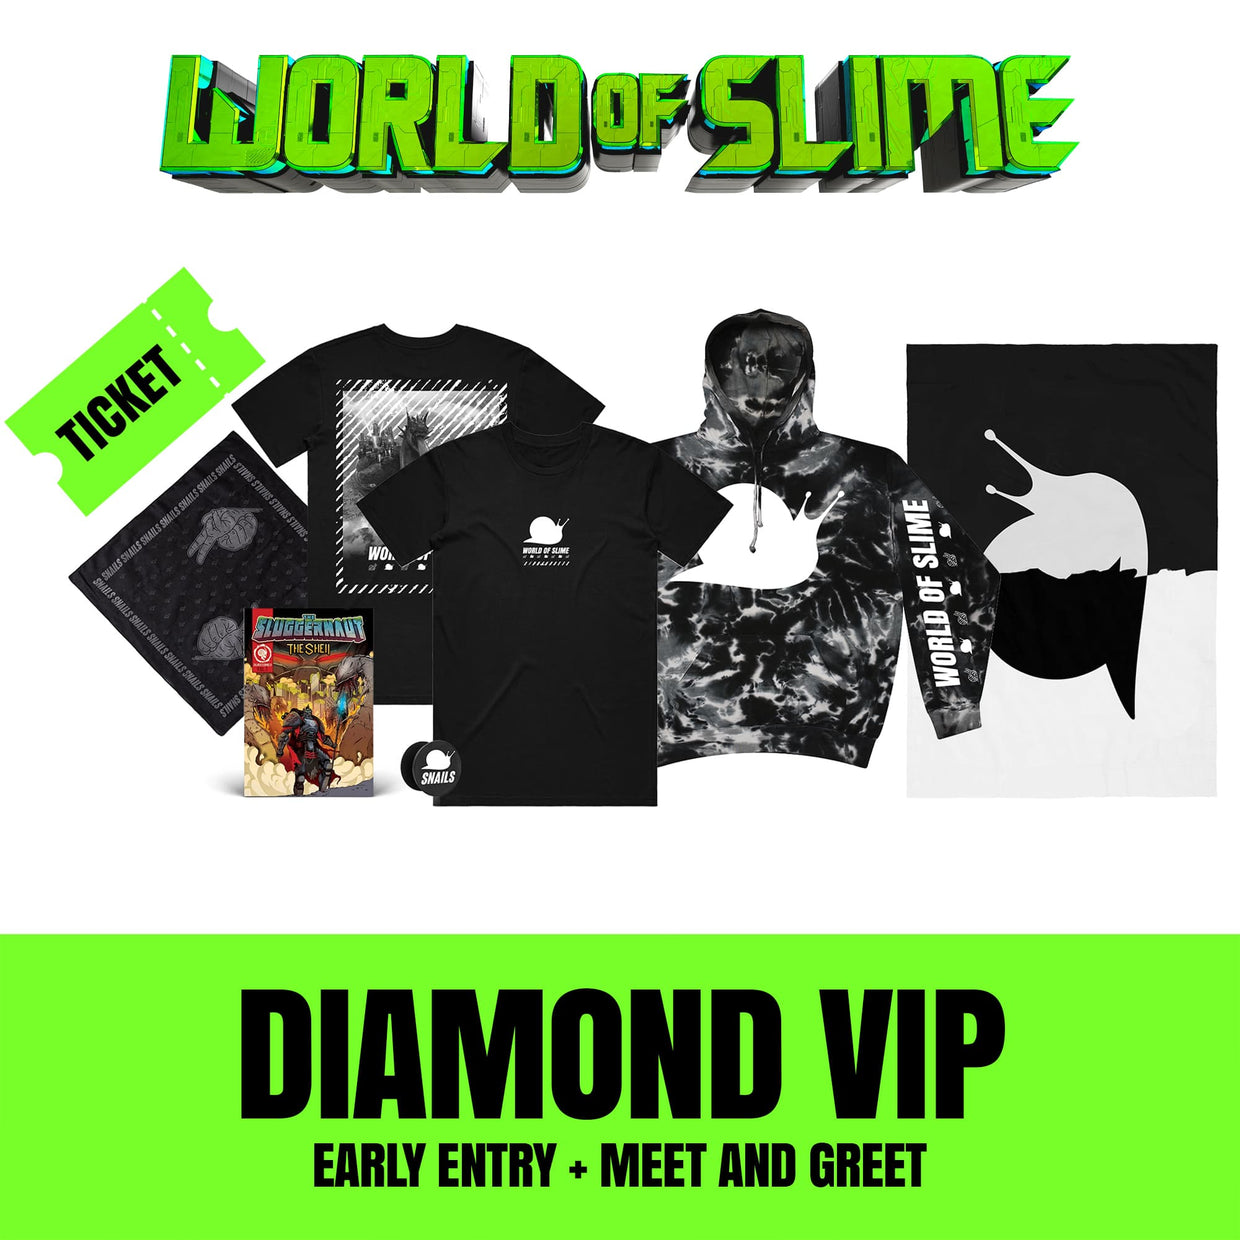 World Of Slime Tour - Tacoma, WA - 11/09